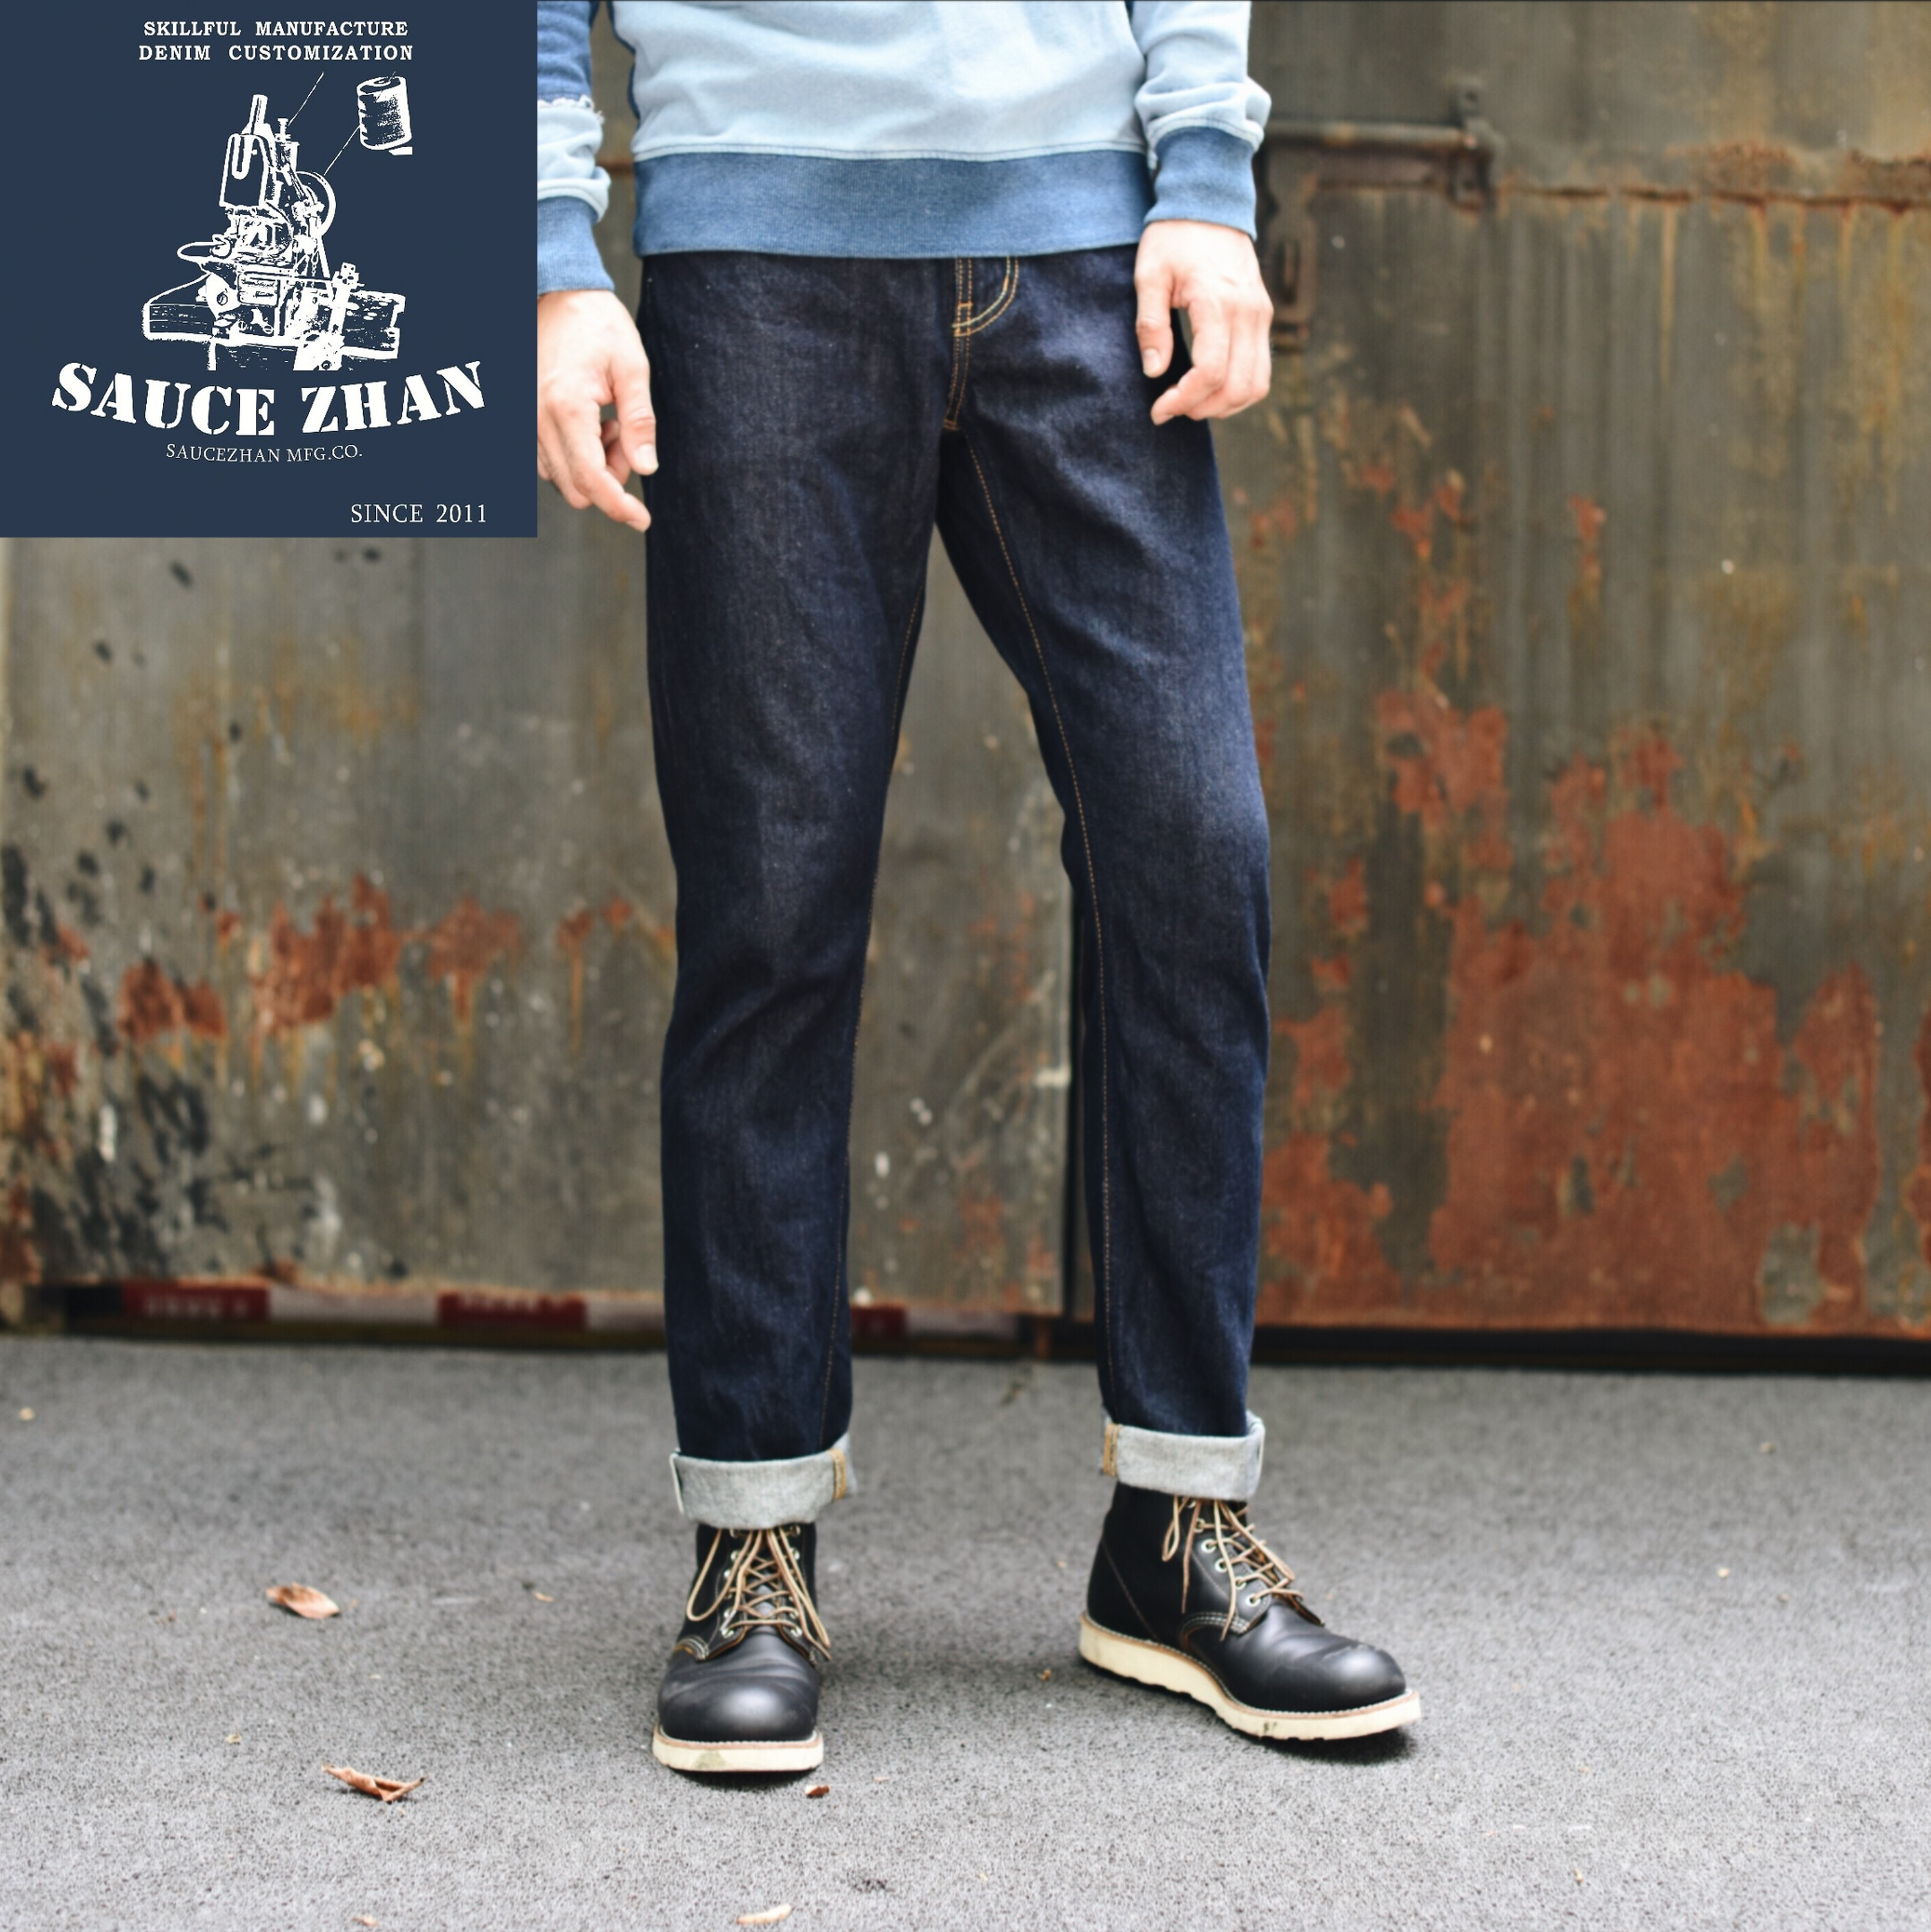 SauceZhan 314XX Jeans Men Slim Fit Jeans Cattle Denim Selvedge Jeans Indigo Jeans Jeans Raw Denim  Mens Jeans Brand Jeans Men